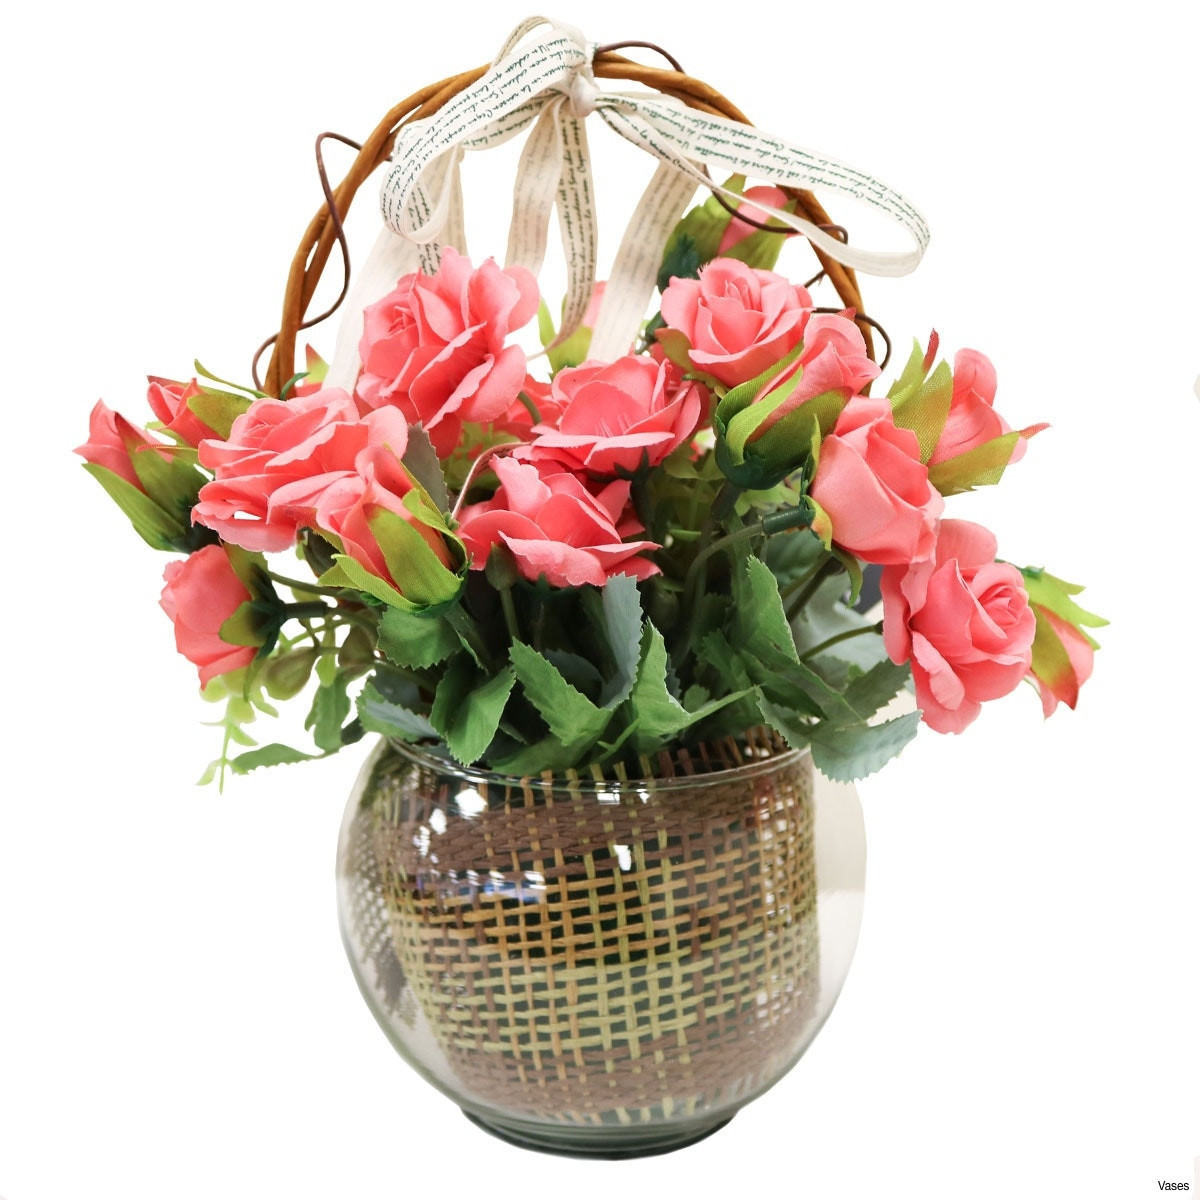 grey vase and flowers of 30 elegant flower basket decoration flower decoration ideas intended for bf142 11km 1200x1200h vases pink flower vase i 0d gold inspiration